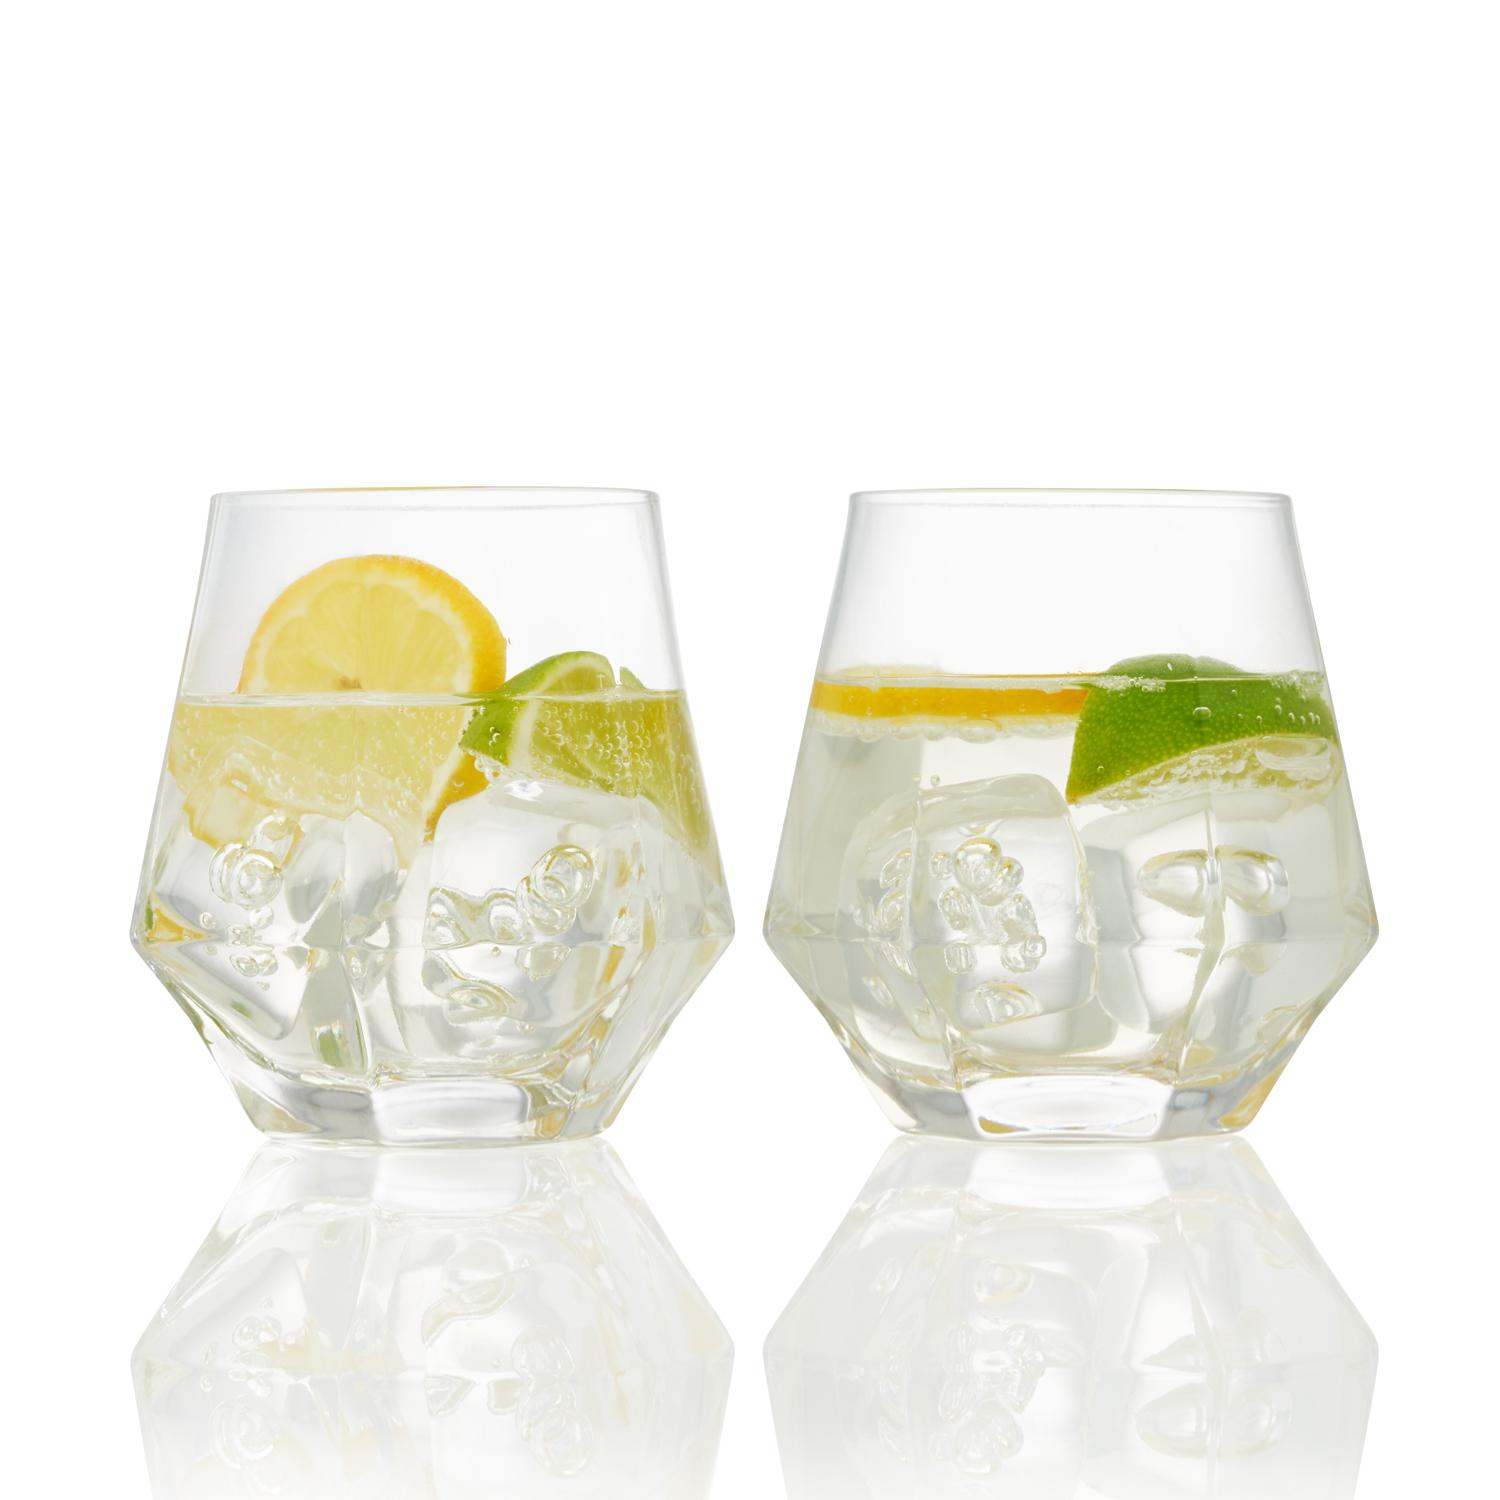 Uberstar Faceted Glasses - Only £14.99 (Pair)